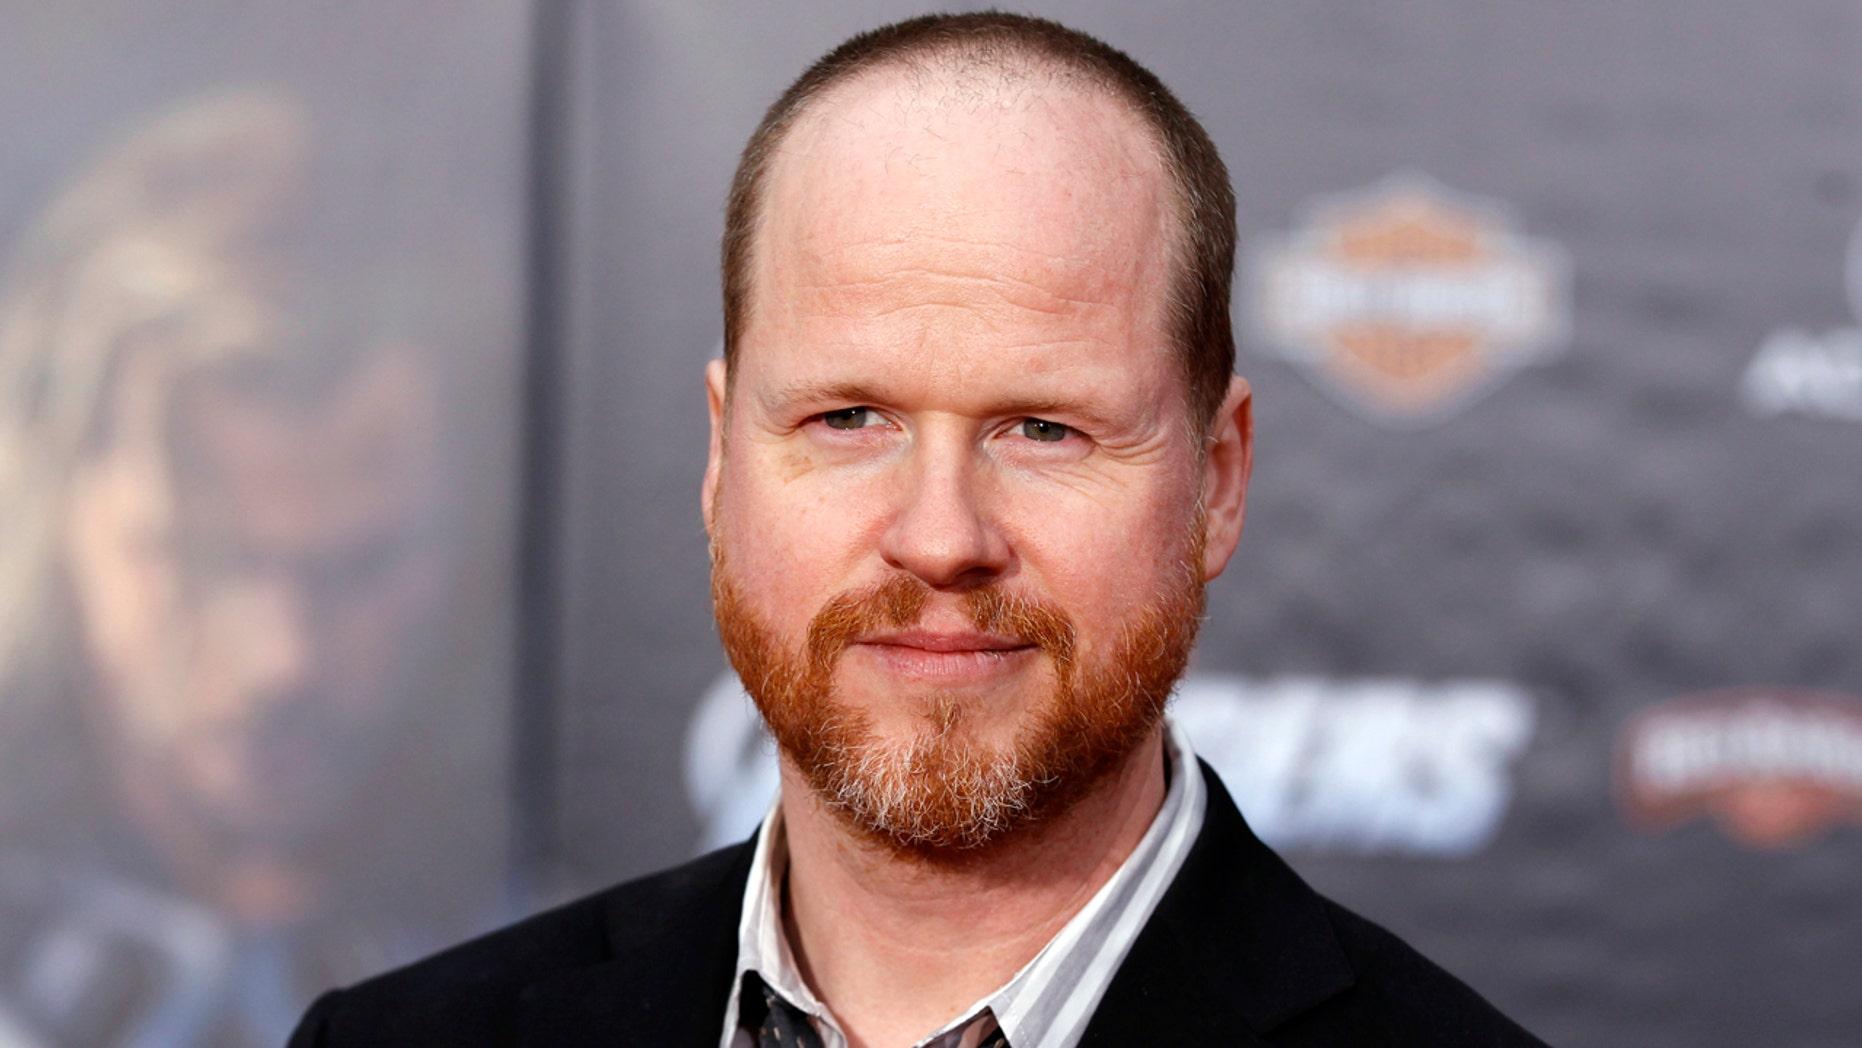 """Director Joss Whedon poses at the world premiere of the film """"Marvel's The Avengers"""" in Hollywood, California April 11, 2012. REUTERS/Danny Moloshok (UNITED STATES - Tags: ENTERTAINMENT) - GM1E84C10L601"""